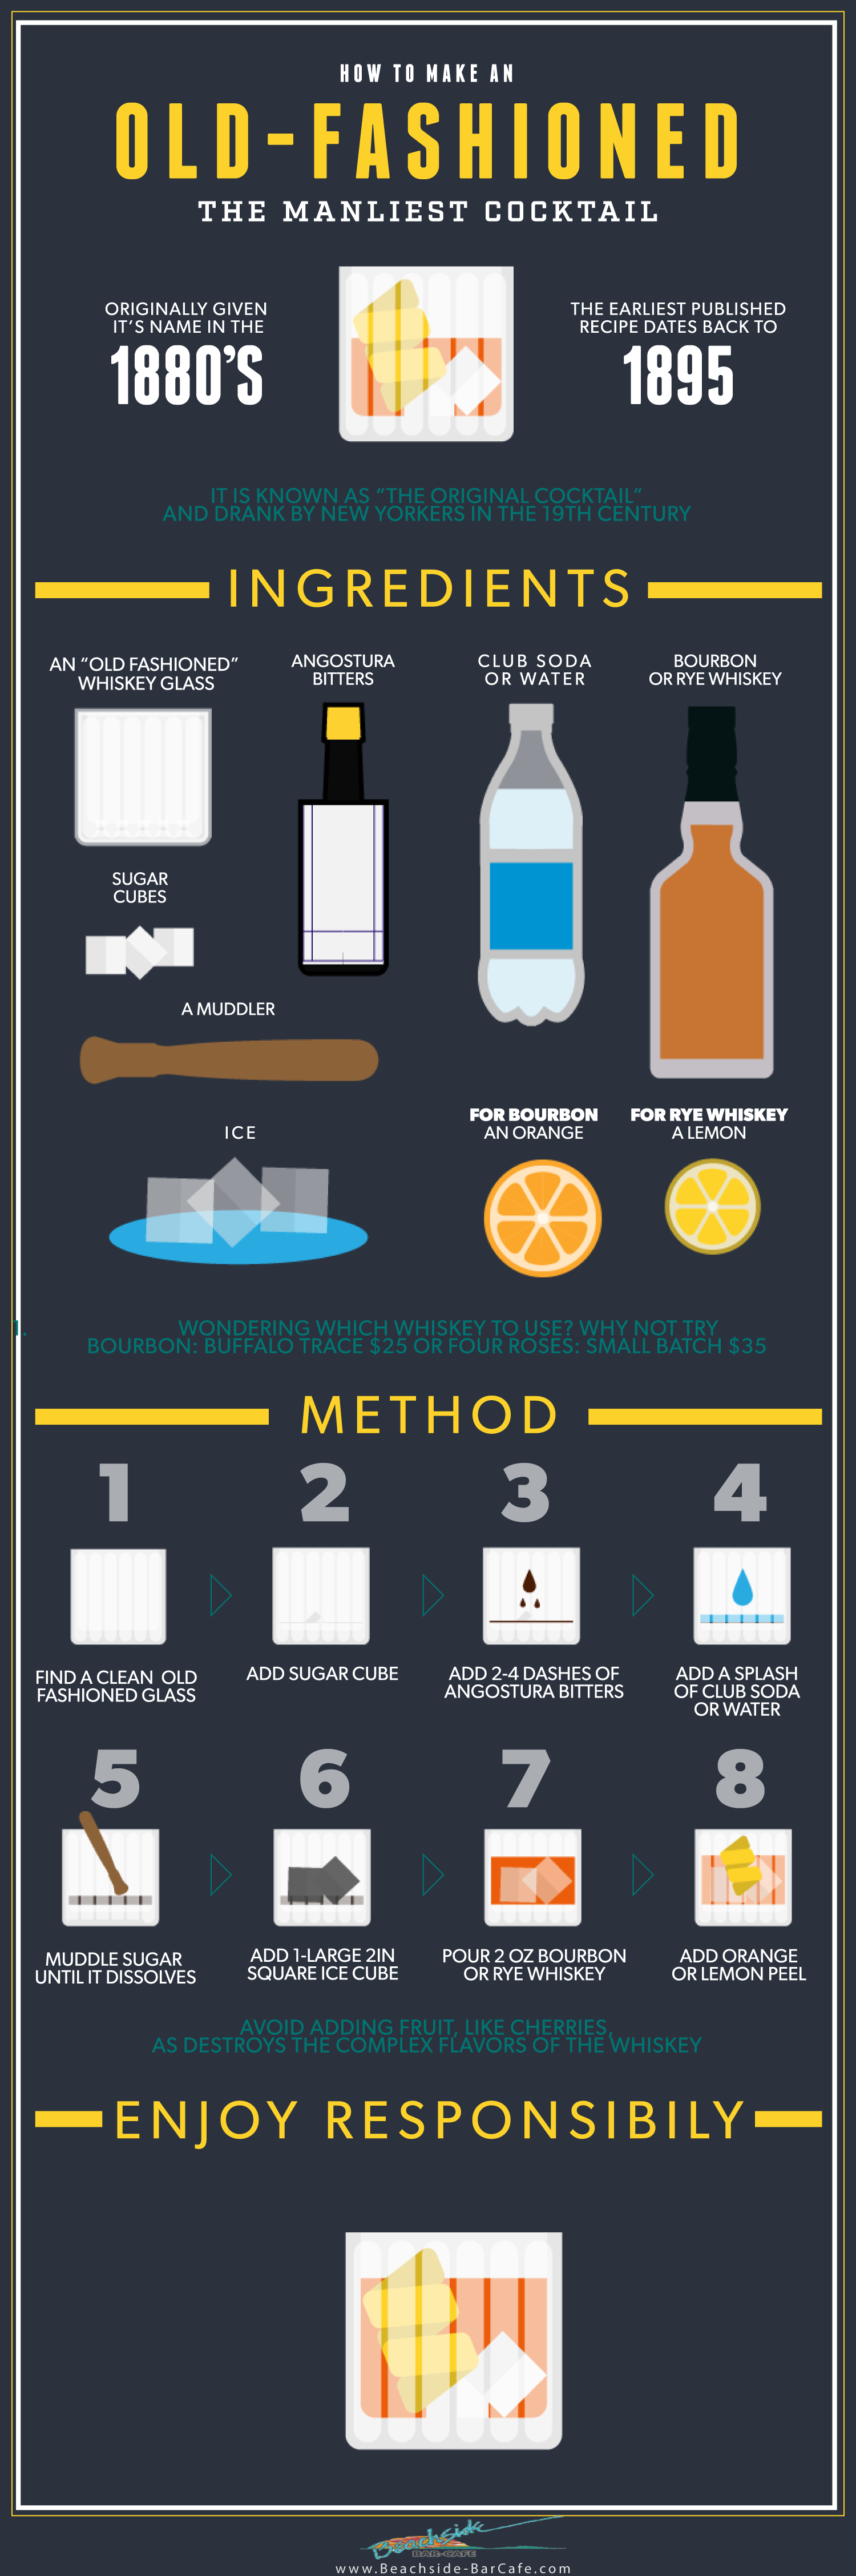 How to make an Old Fashioned, as an infographic